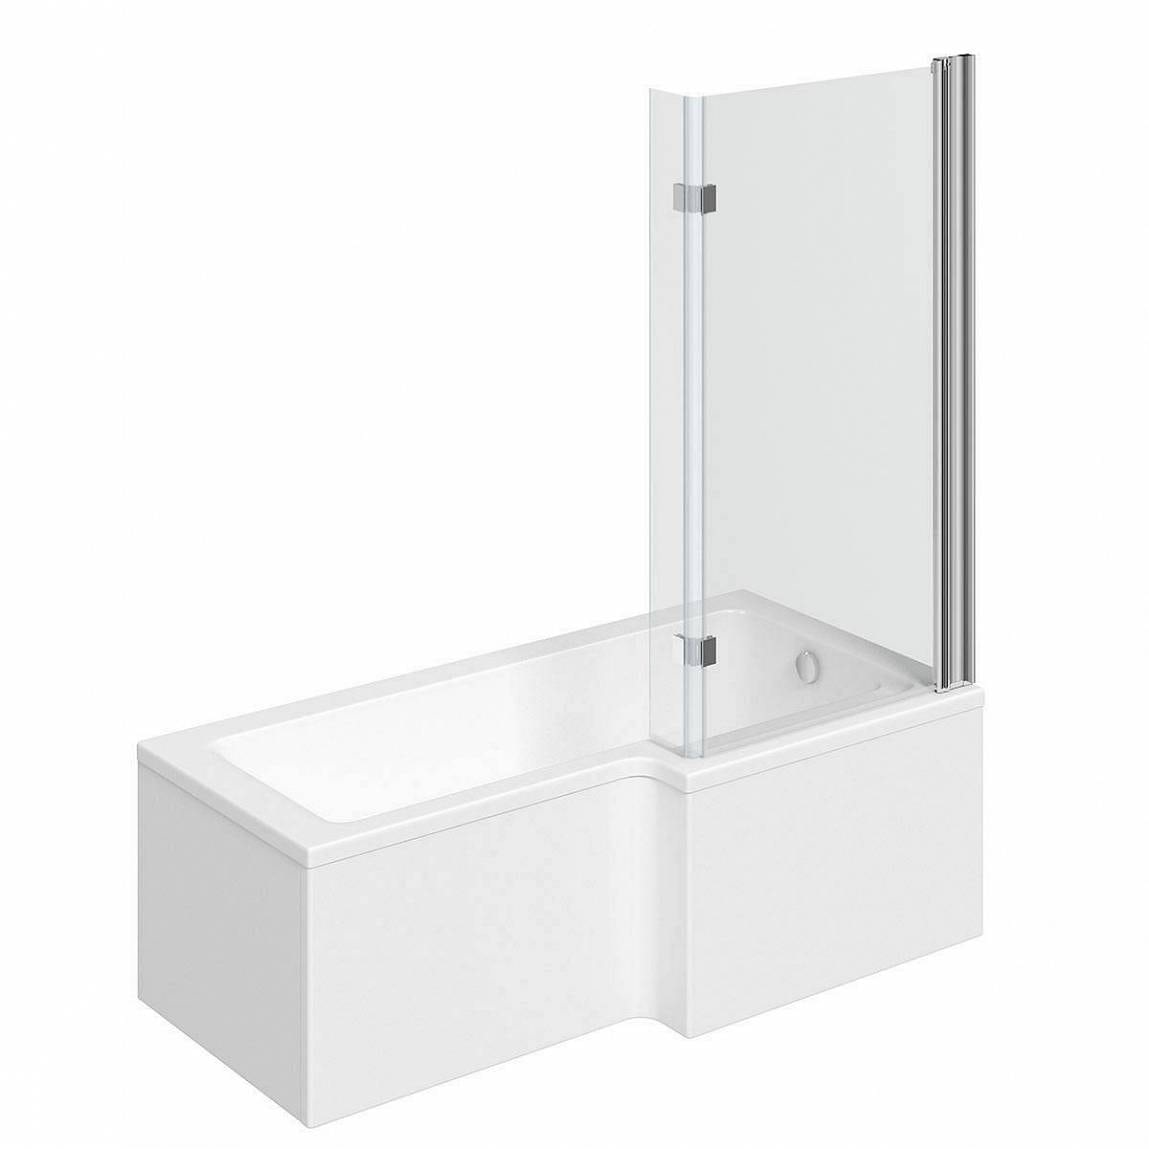 hinged shower screen mobroi com boston shower bath 1700 x 850 rh inc 8mm hinged screen